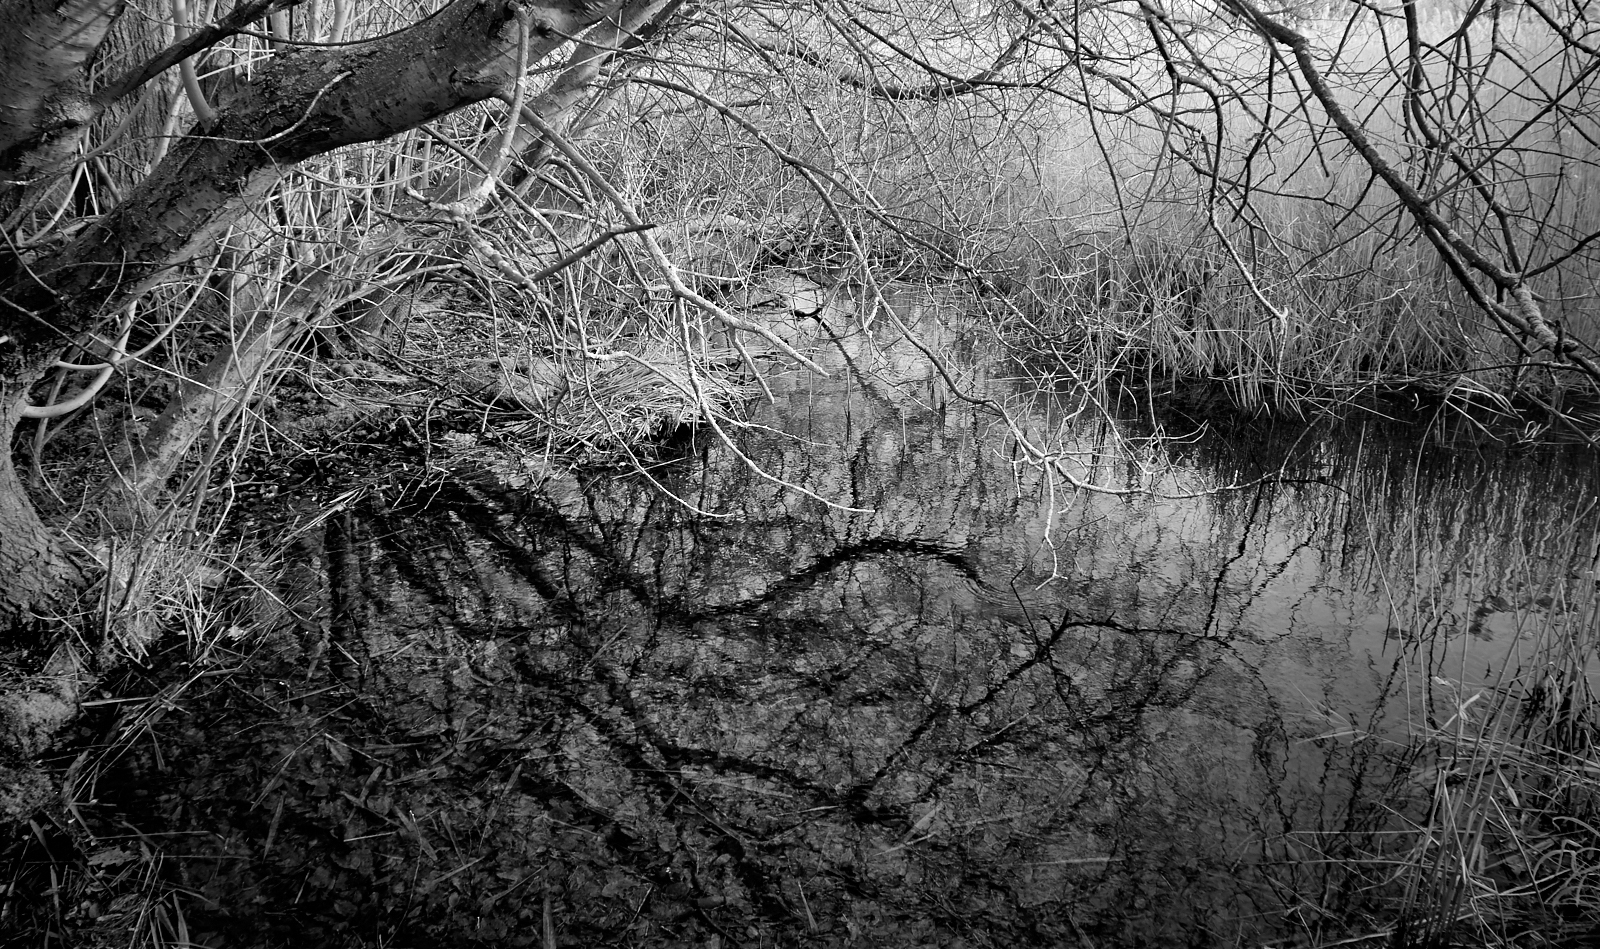 Branch patterns over water